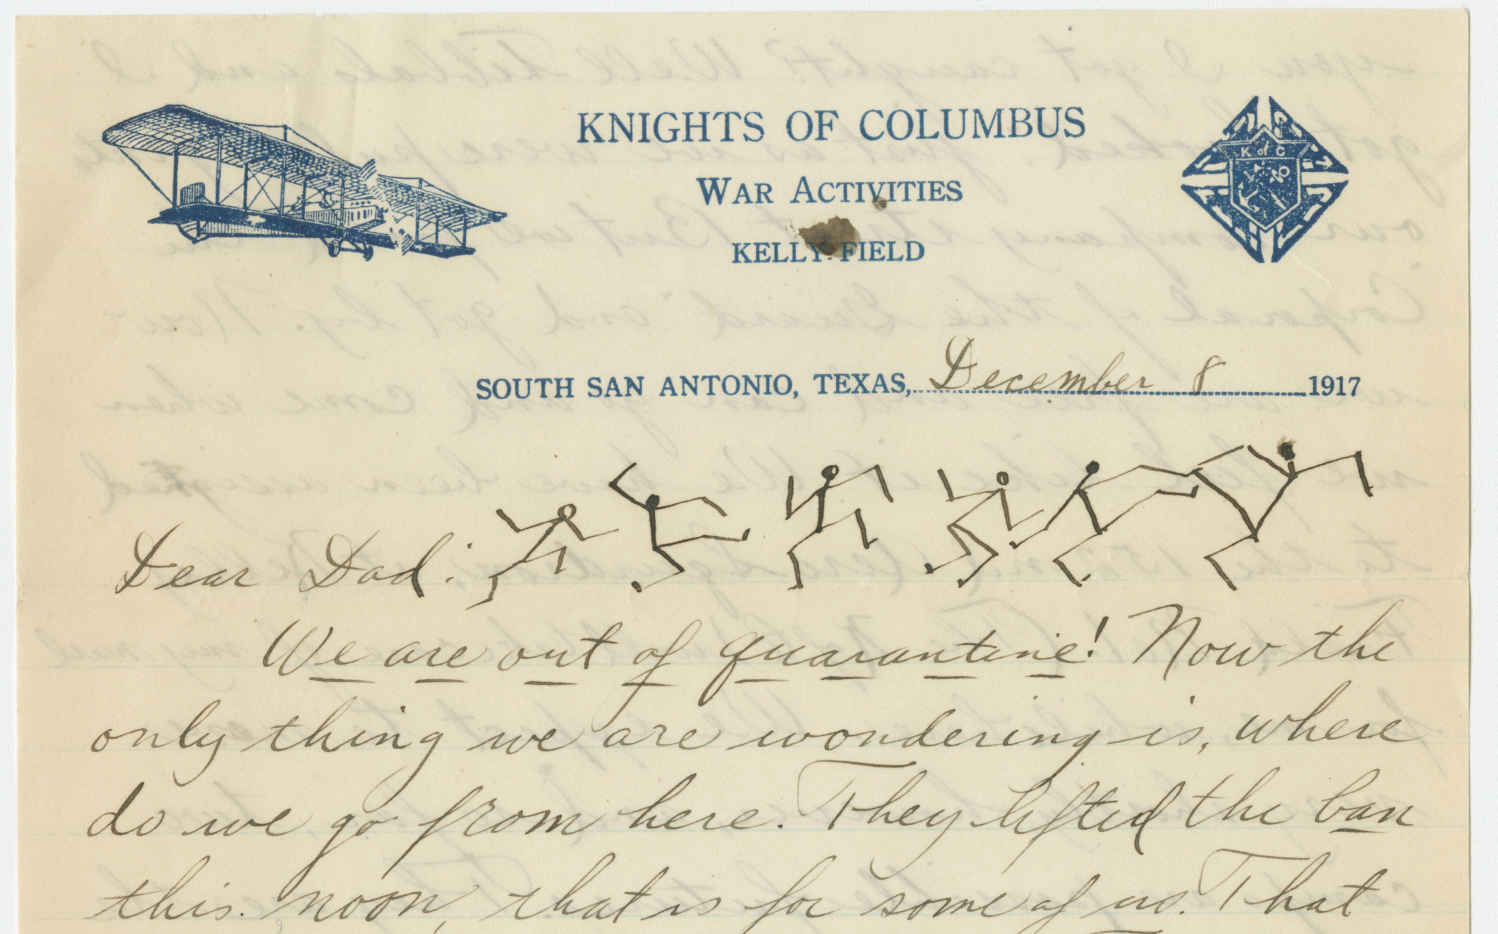 Beginning of a handwritten letter dated December 8, 1917, in which McElligott writes that he is now out of quarantine.